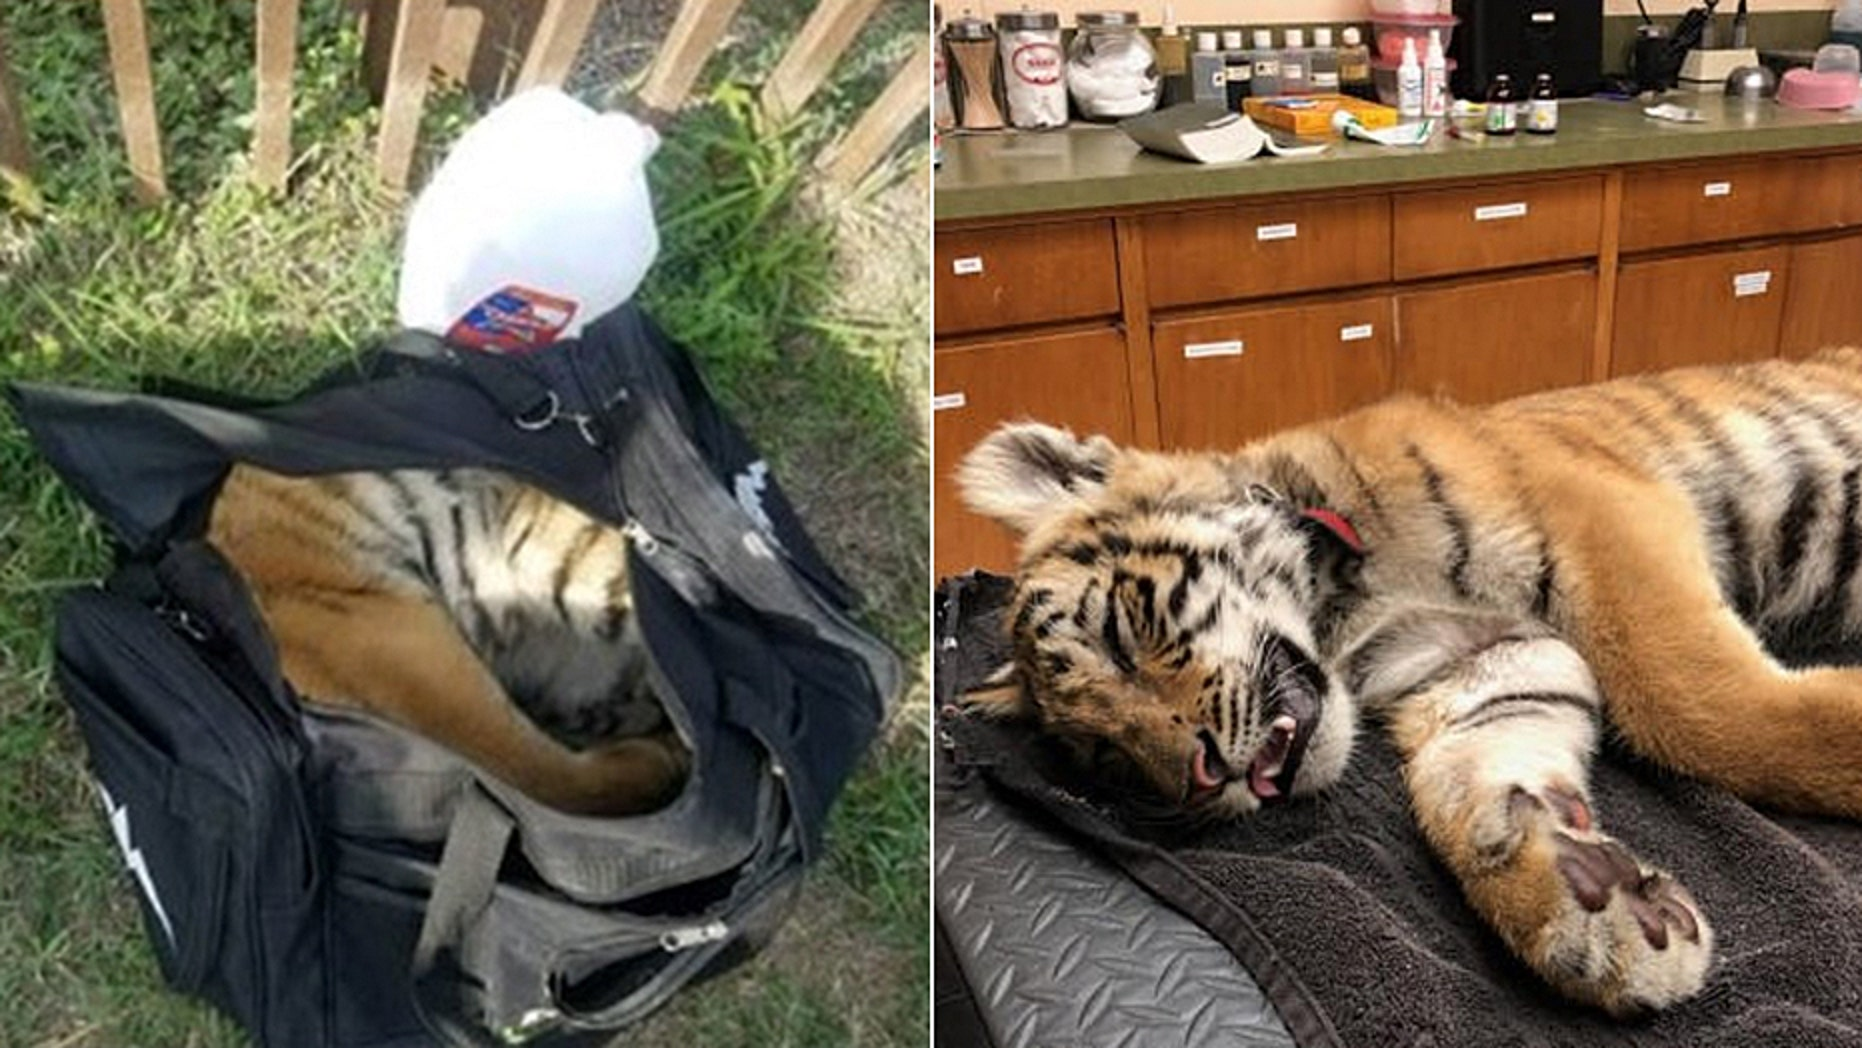 Border Patrol agents found a live tiger cub inside a duffel bag after they saw three people try to enter the U.S. illegally.